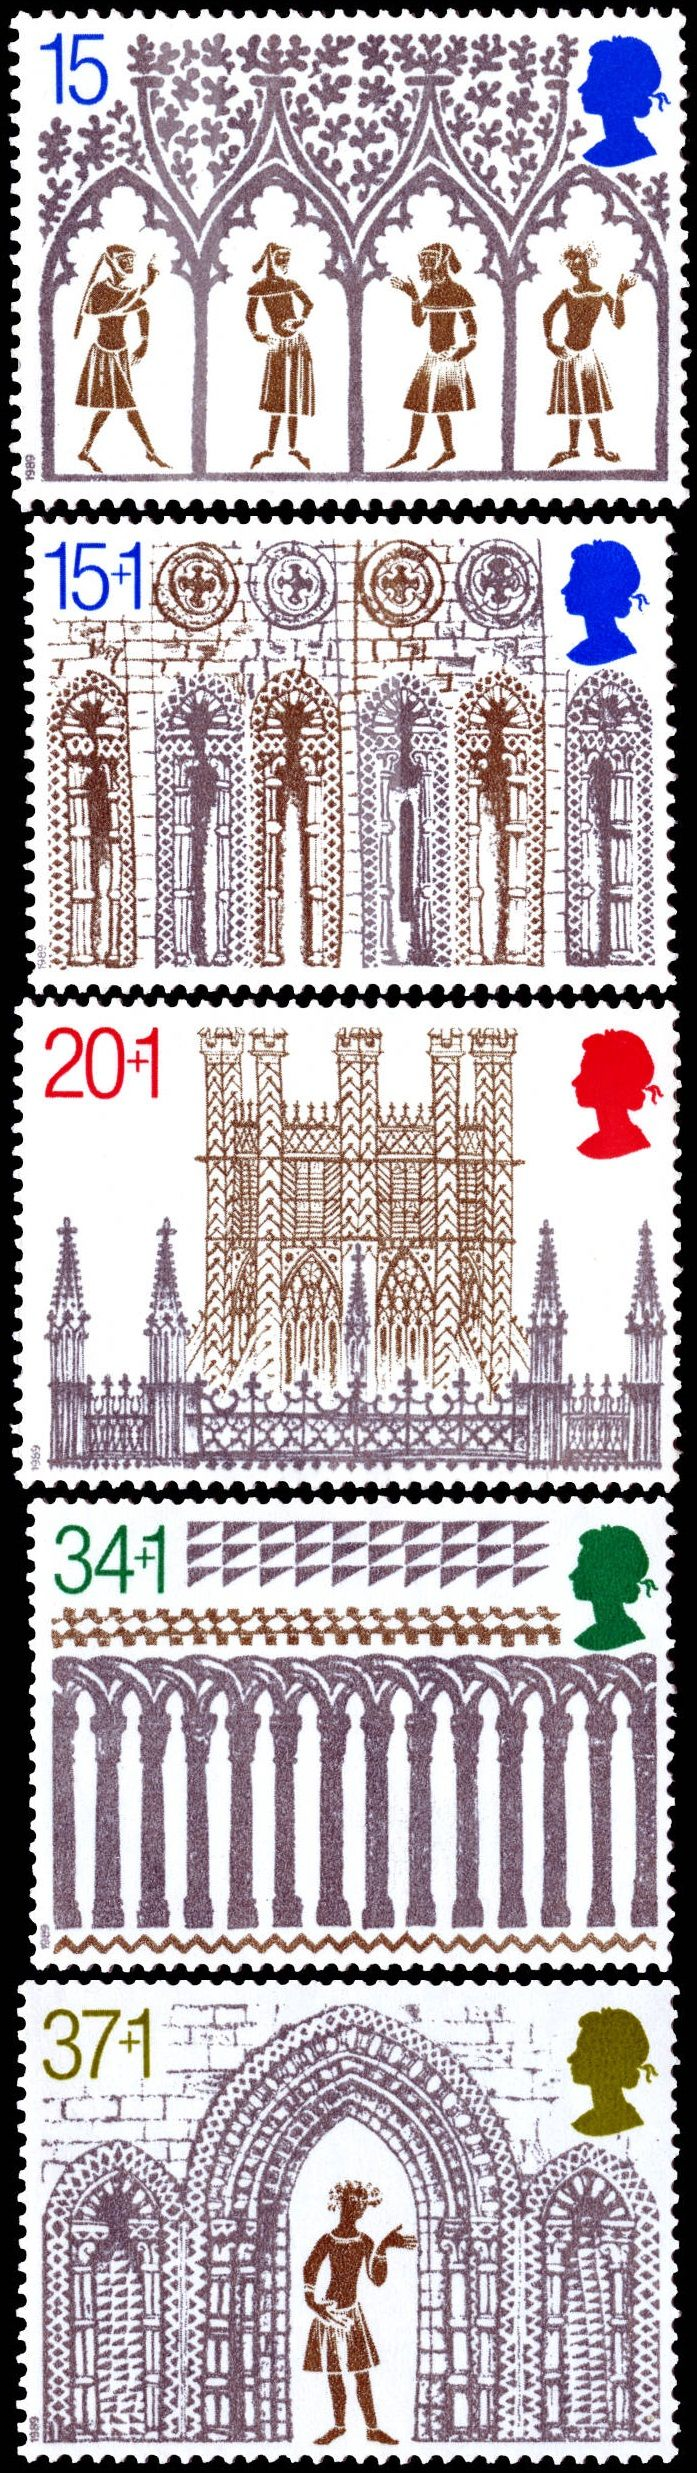 Royal Mail 1989 - Christmas. 800th Anniversary of Ely Cathedral http://rmspecialstamps.com/##stamps